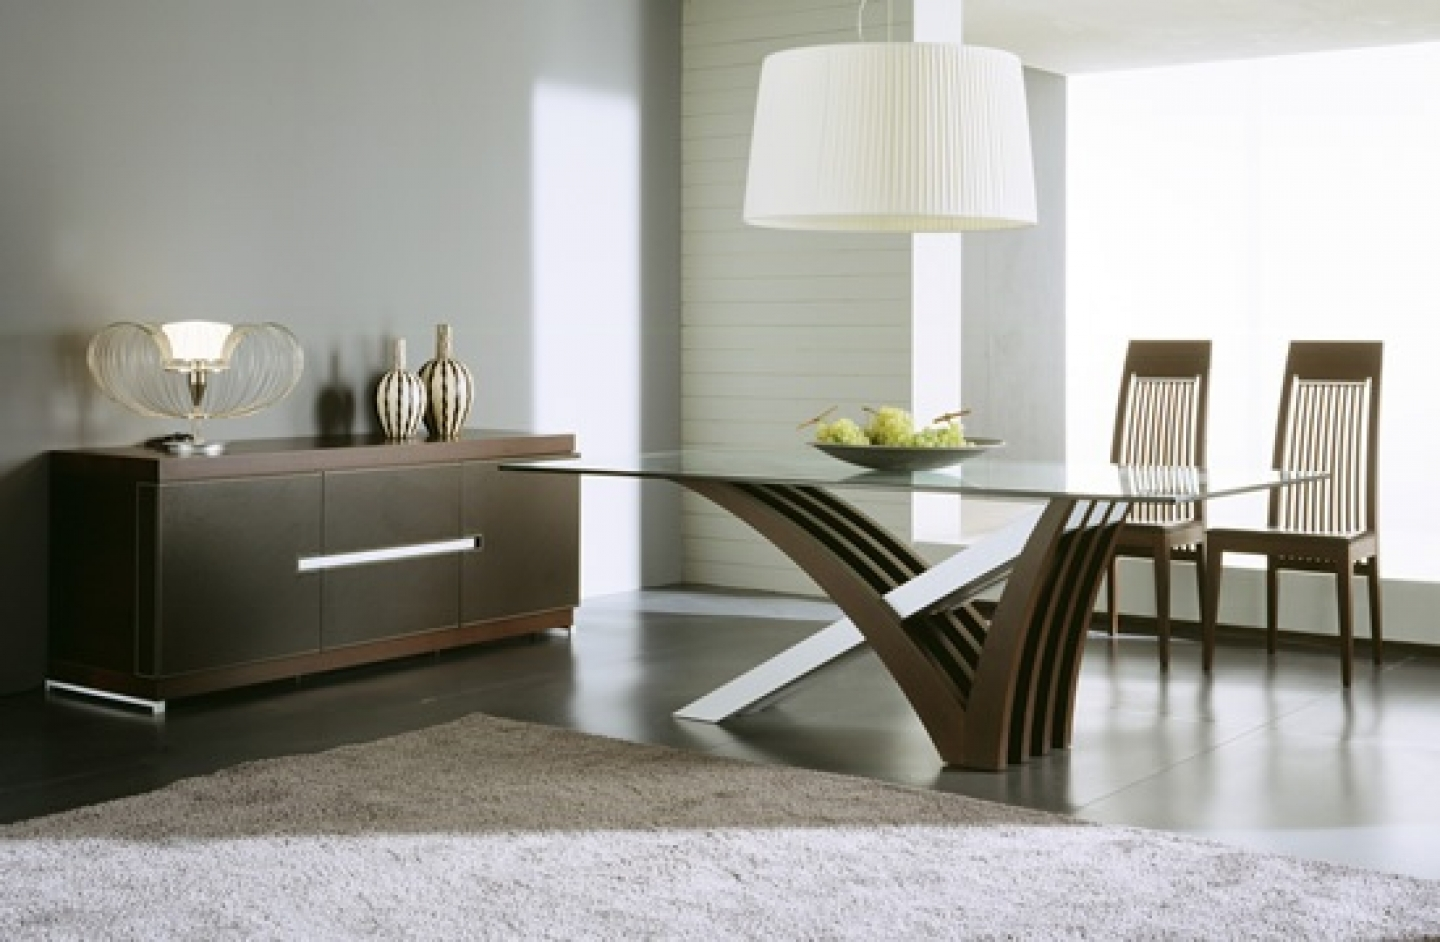 Teak patio furniture at home decor dream house for Contemporary dining room furniture ideas